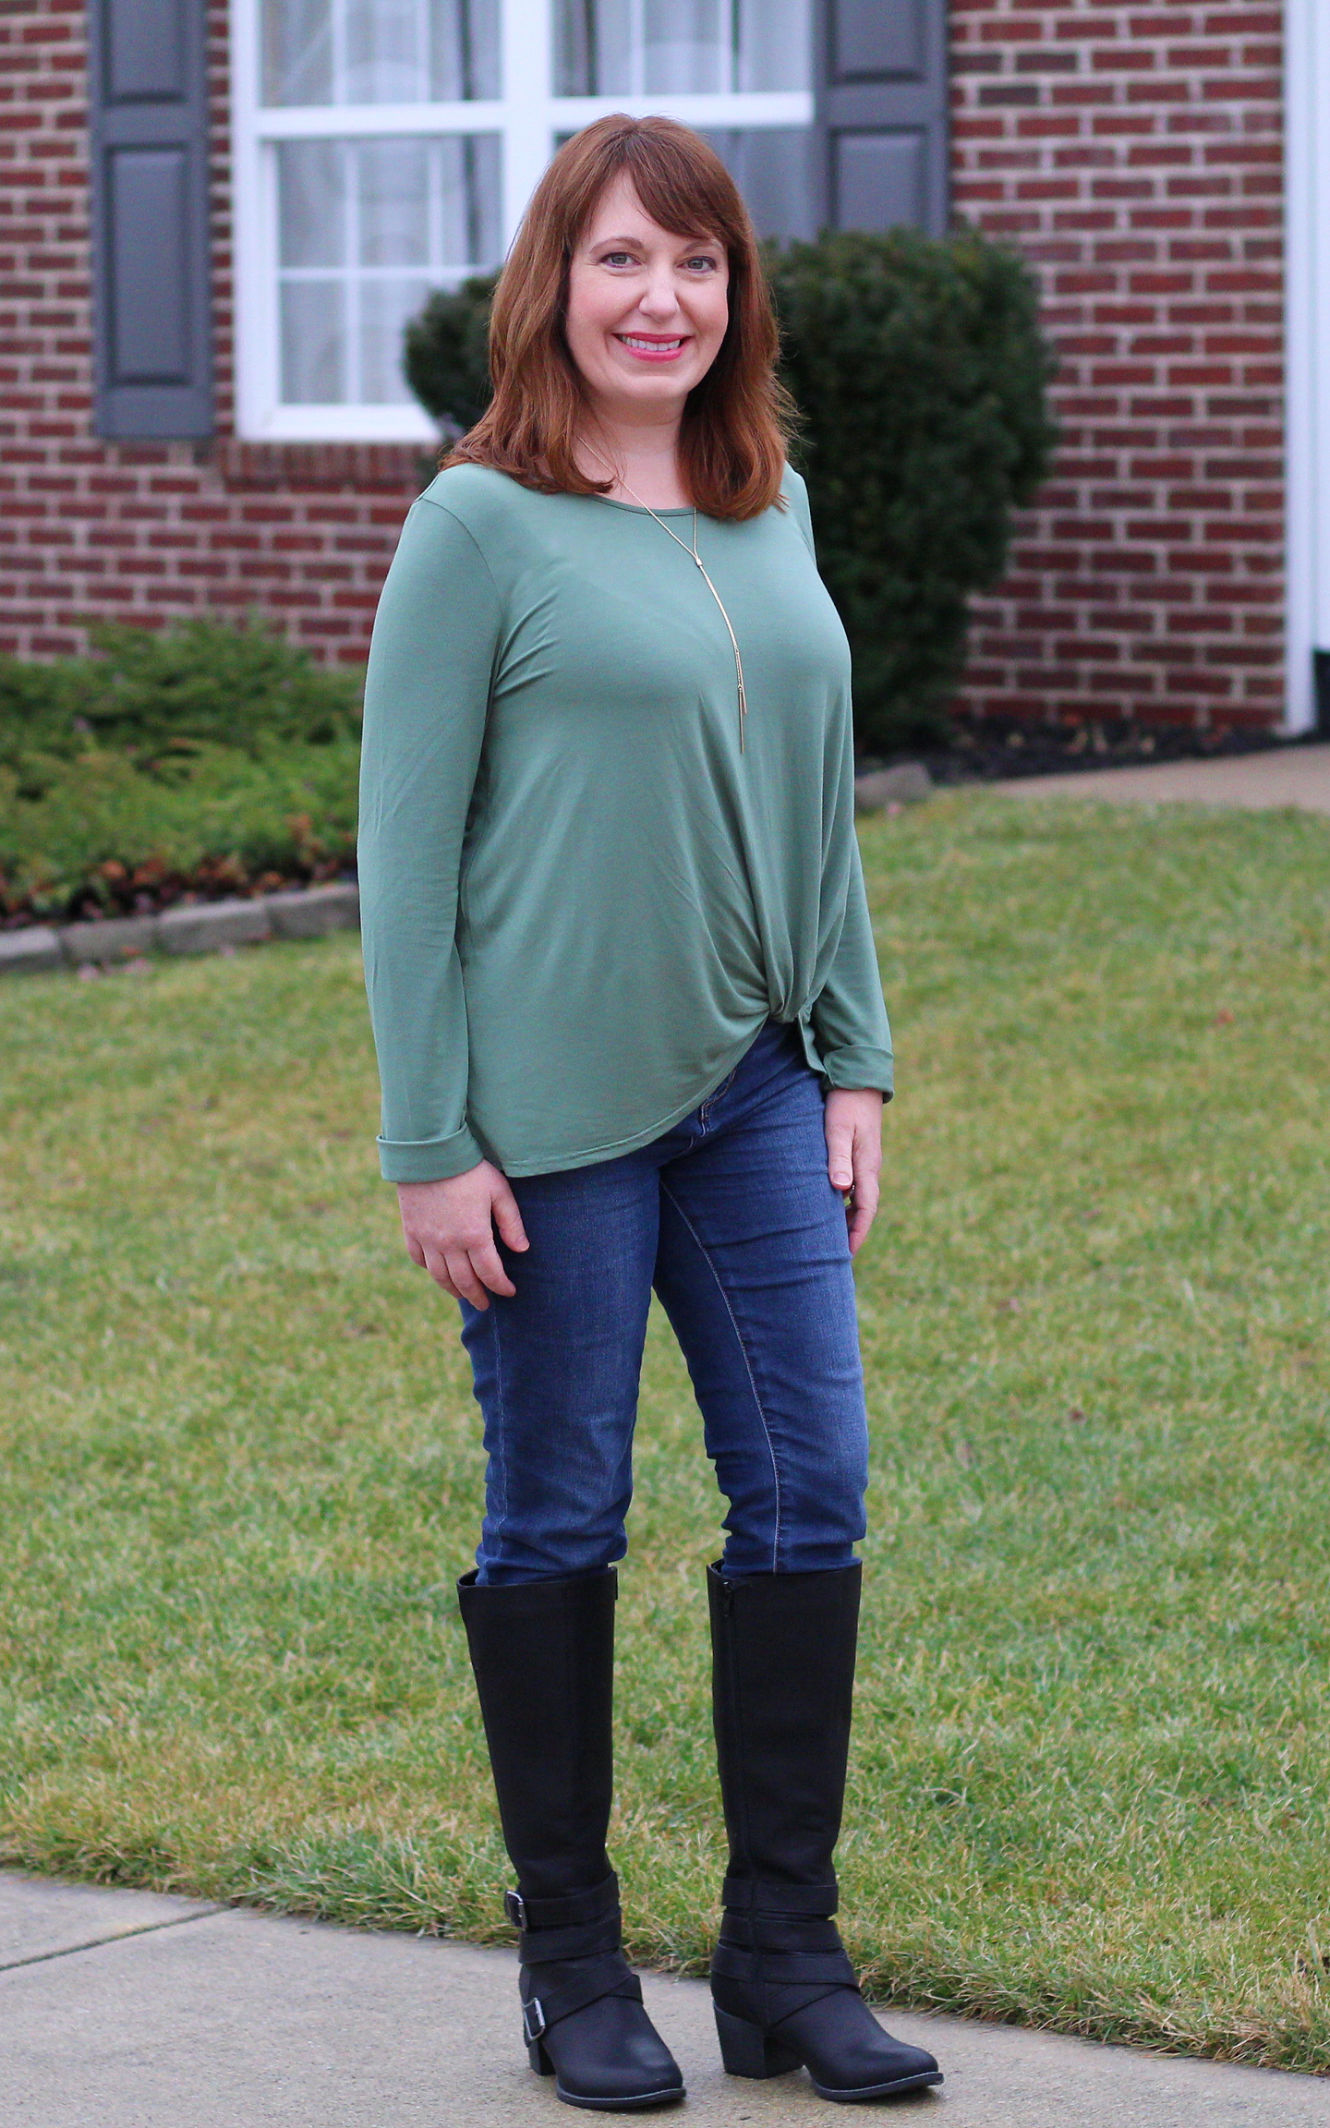 Green Twist Top And Black Boots